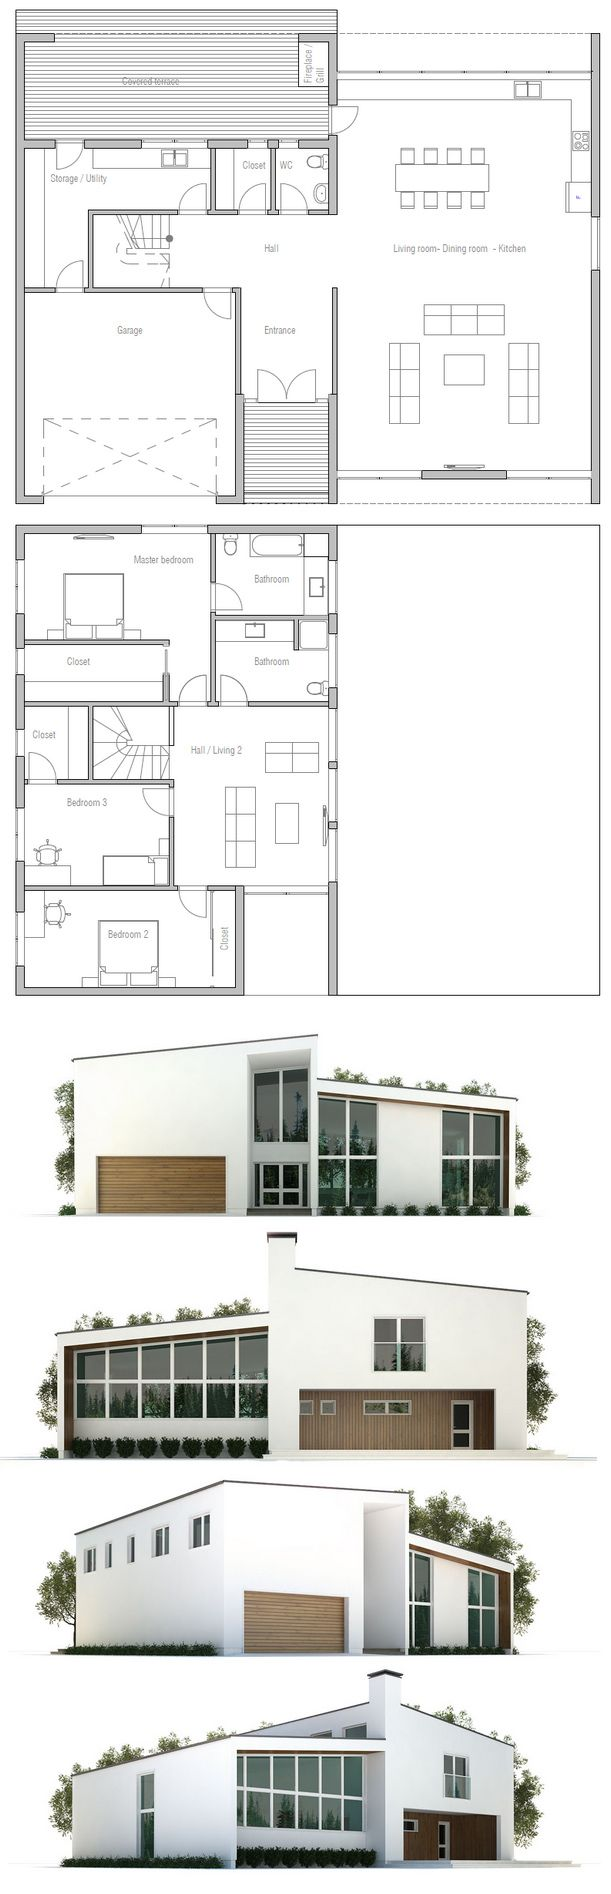 Minimalist house 3d - Find This Pin And More On First House 3d Plans